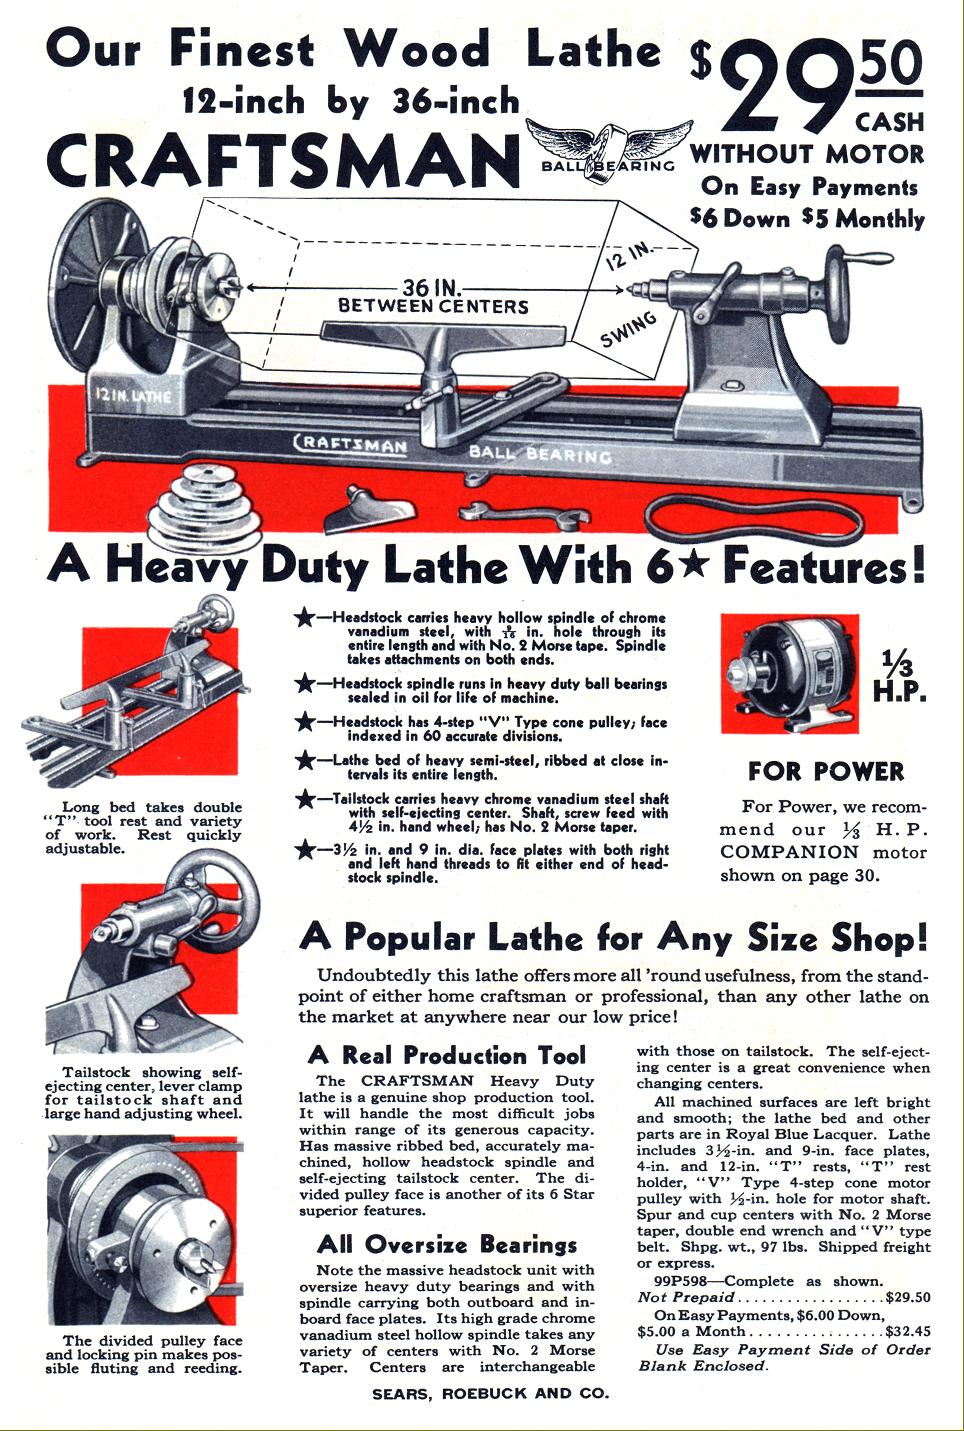 Above: 1933 advertisement for a top-of-the-range Herberts'-manufactured  ball-bearing spindle wood lathe